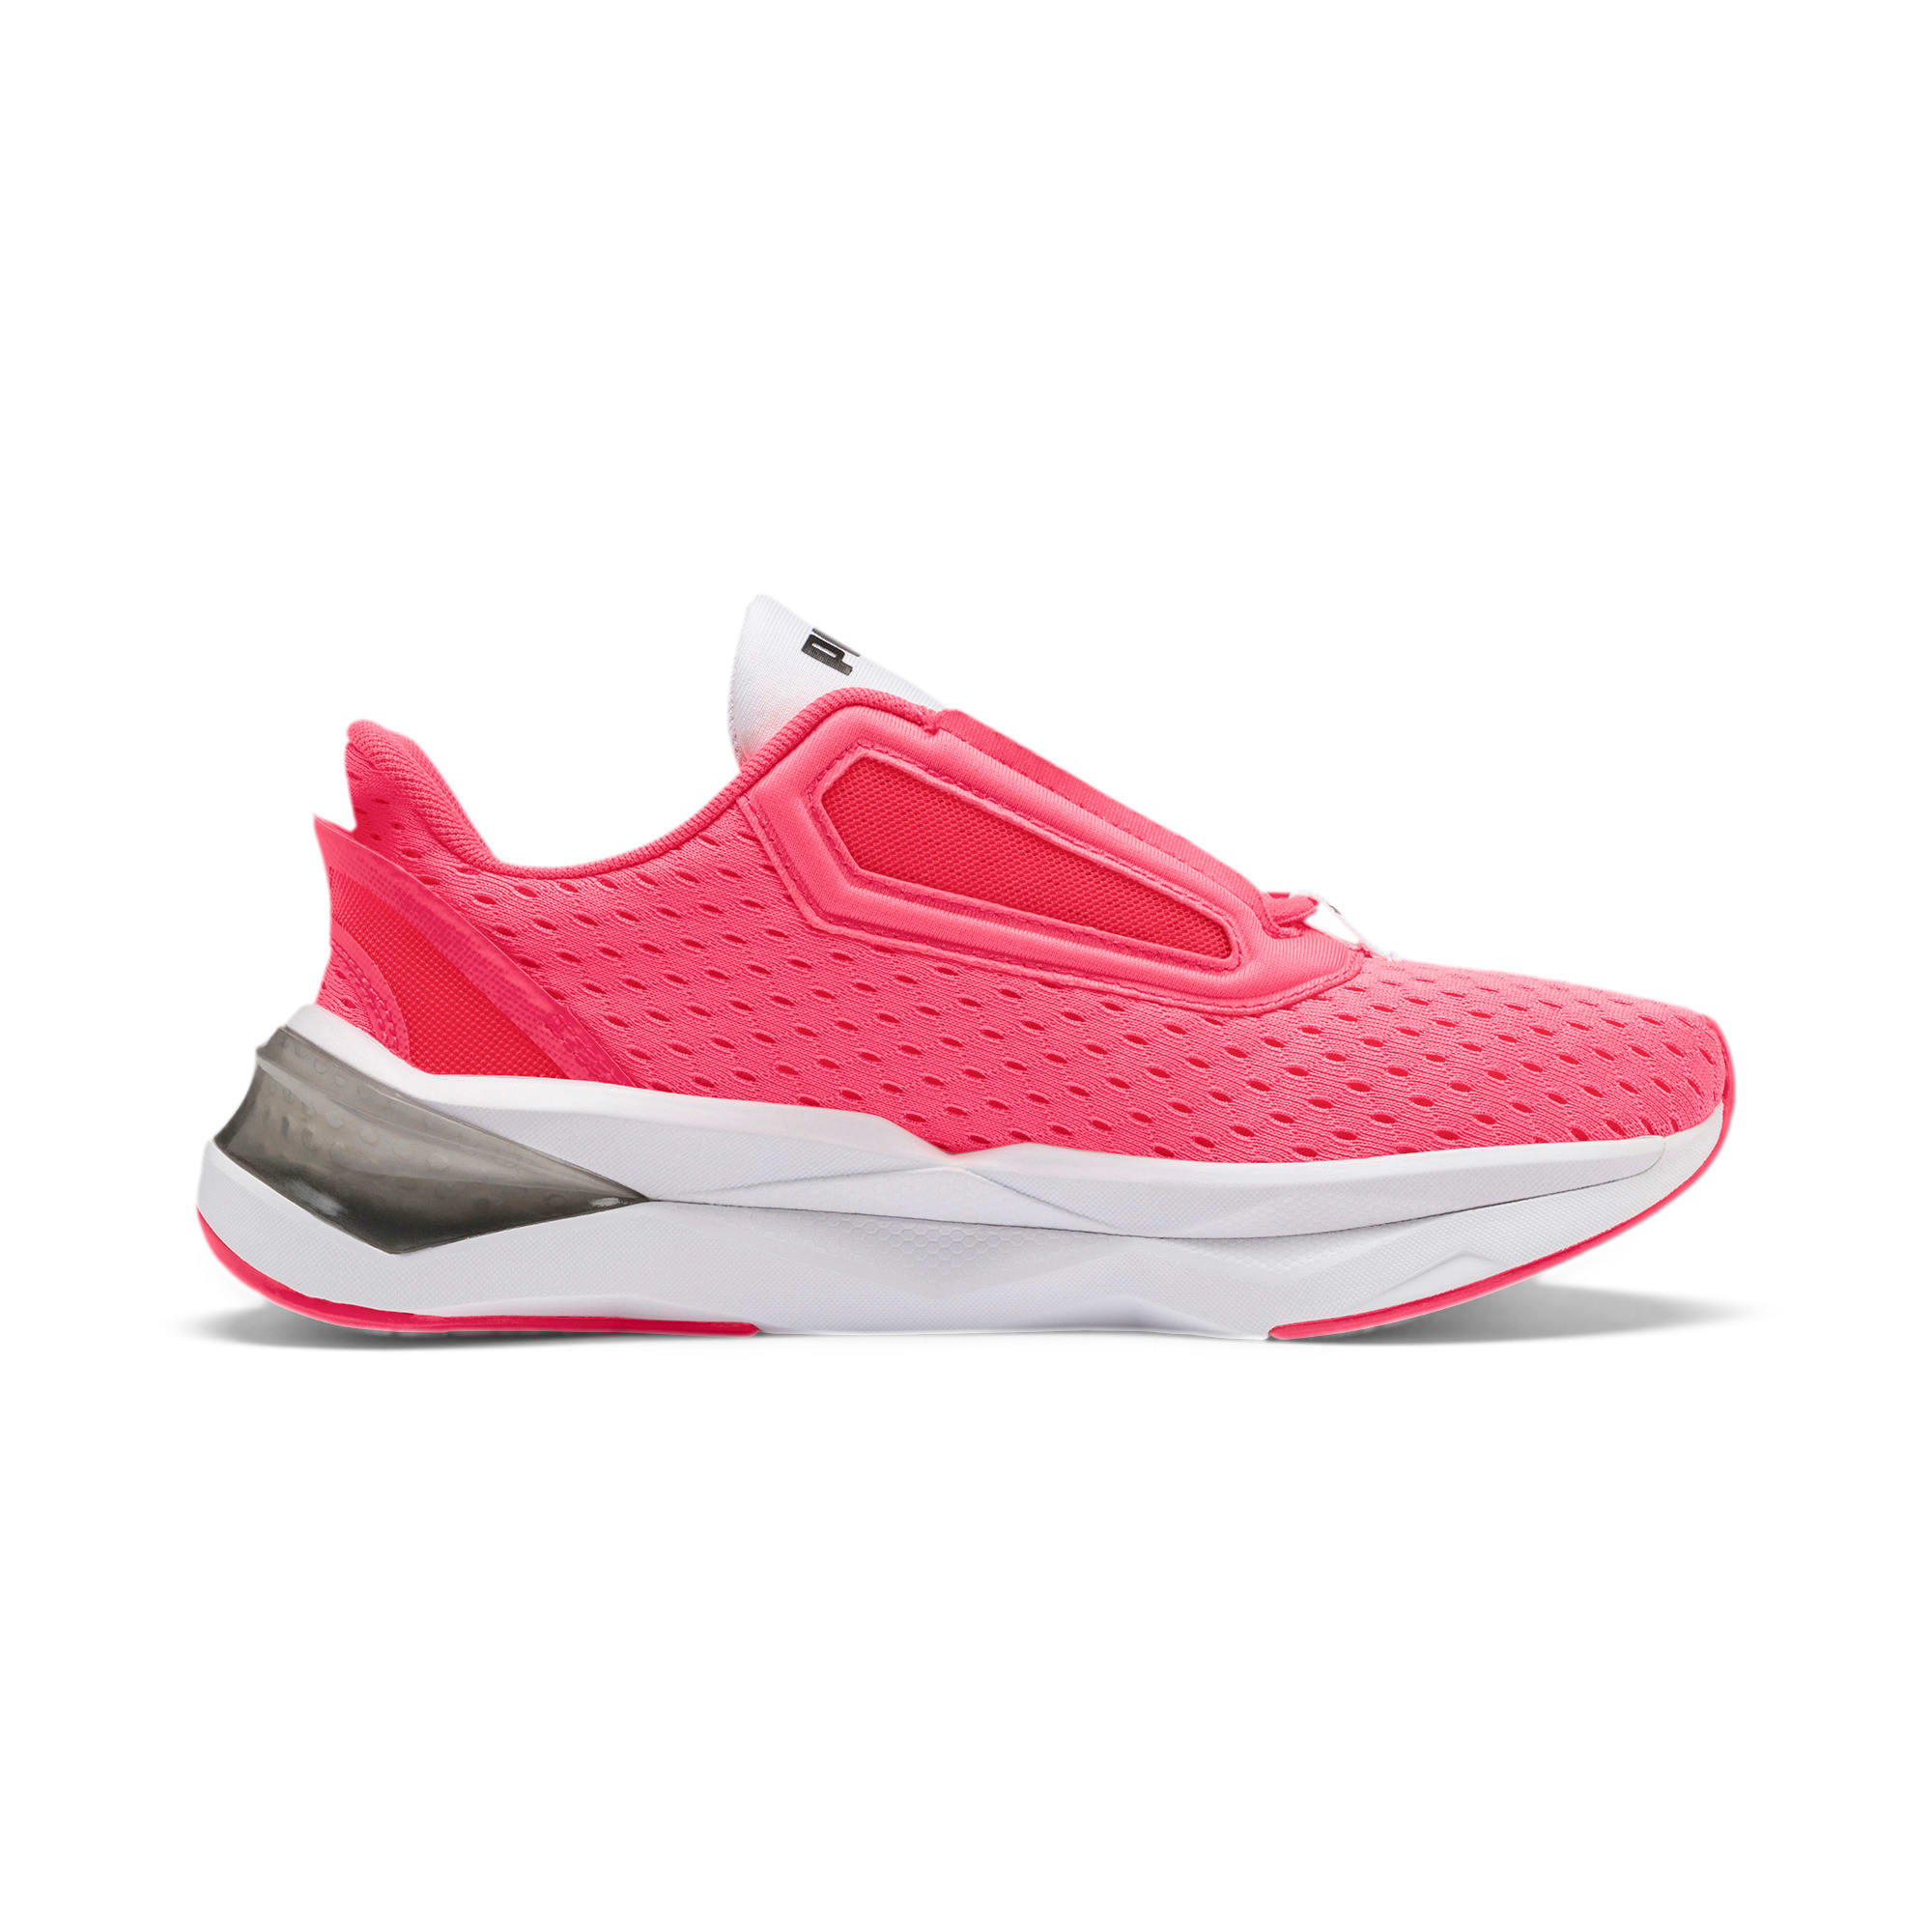 Thumbnail 9 of LQDCELL Shatter XT Women's Training Shoes, Pink Alert-Puma White, medium